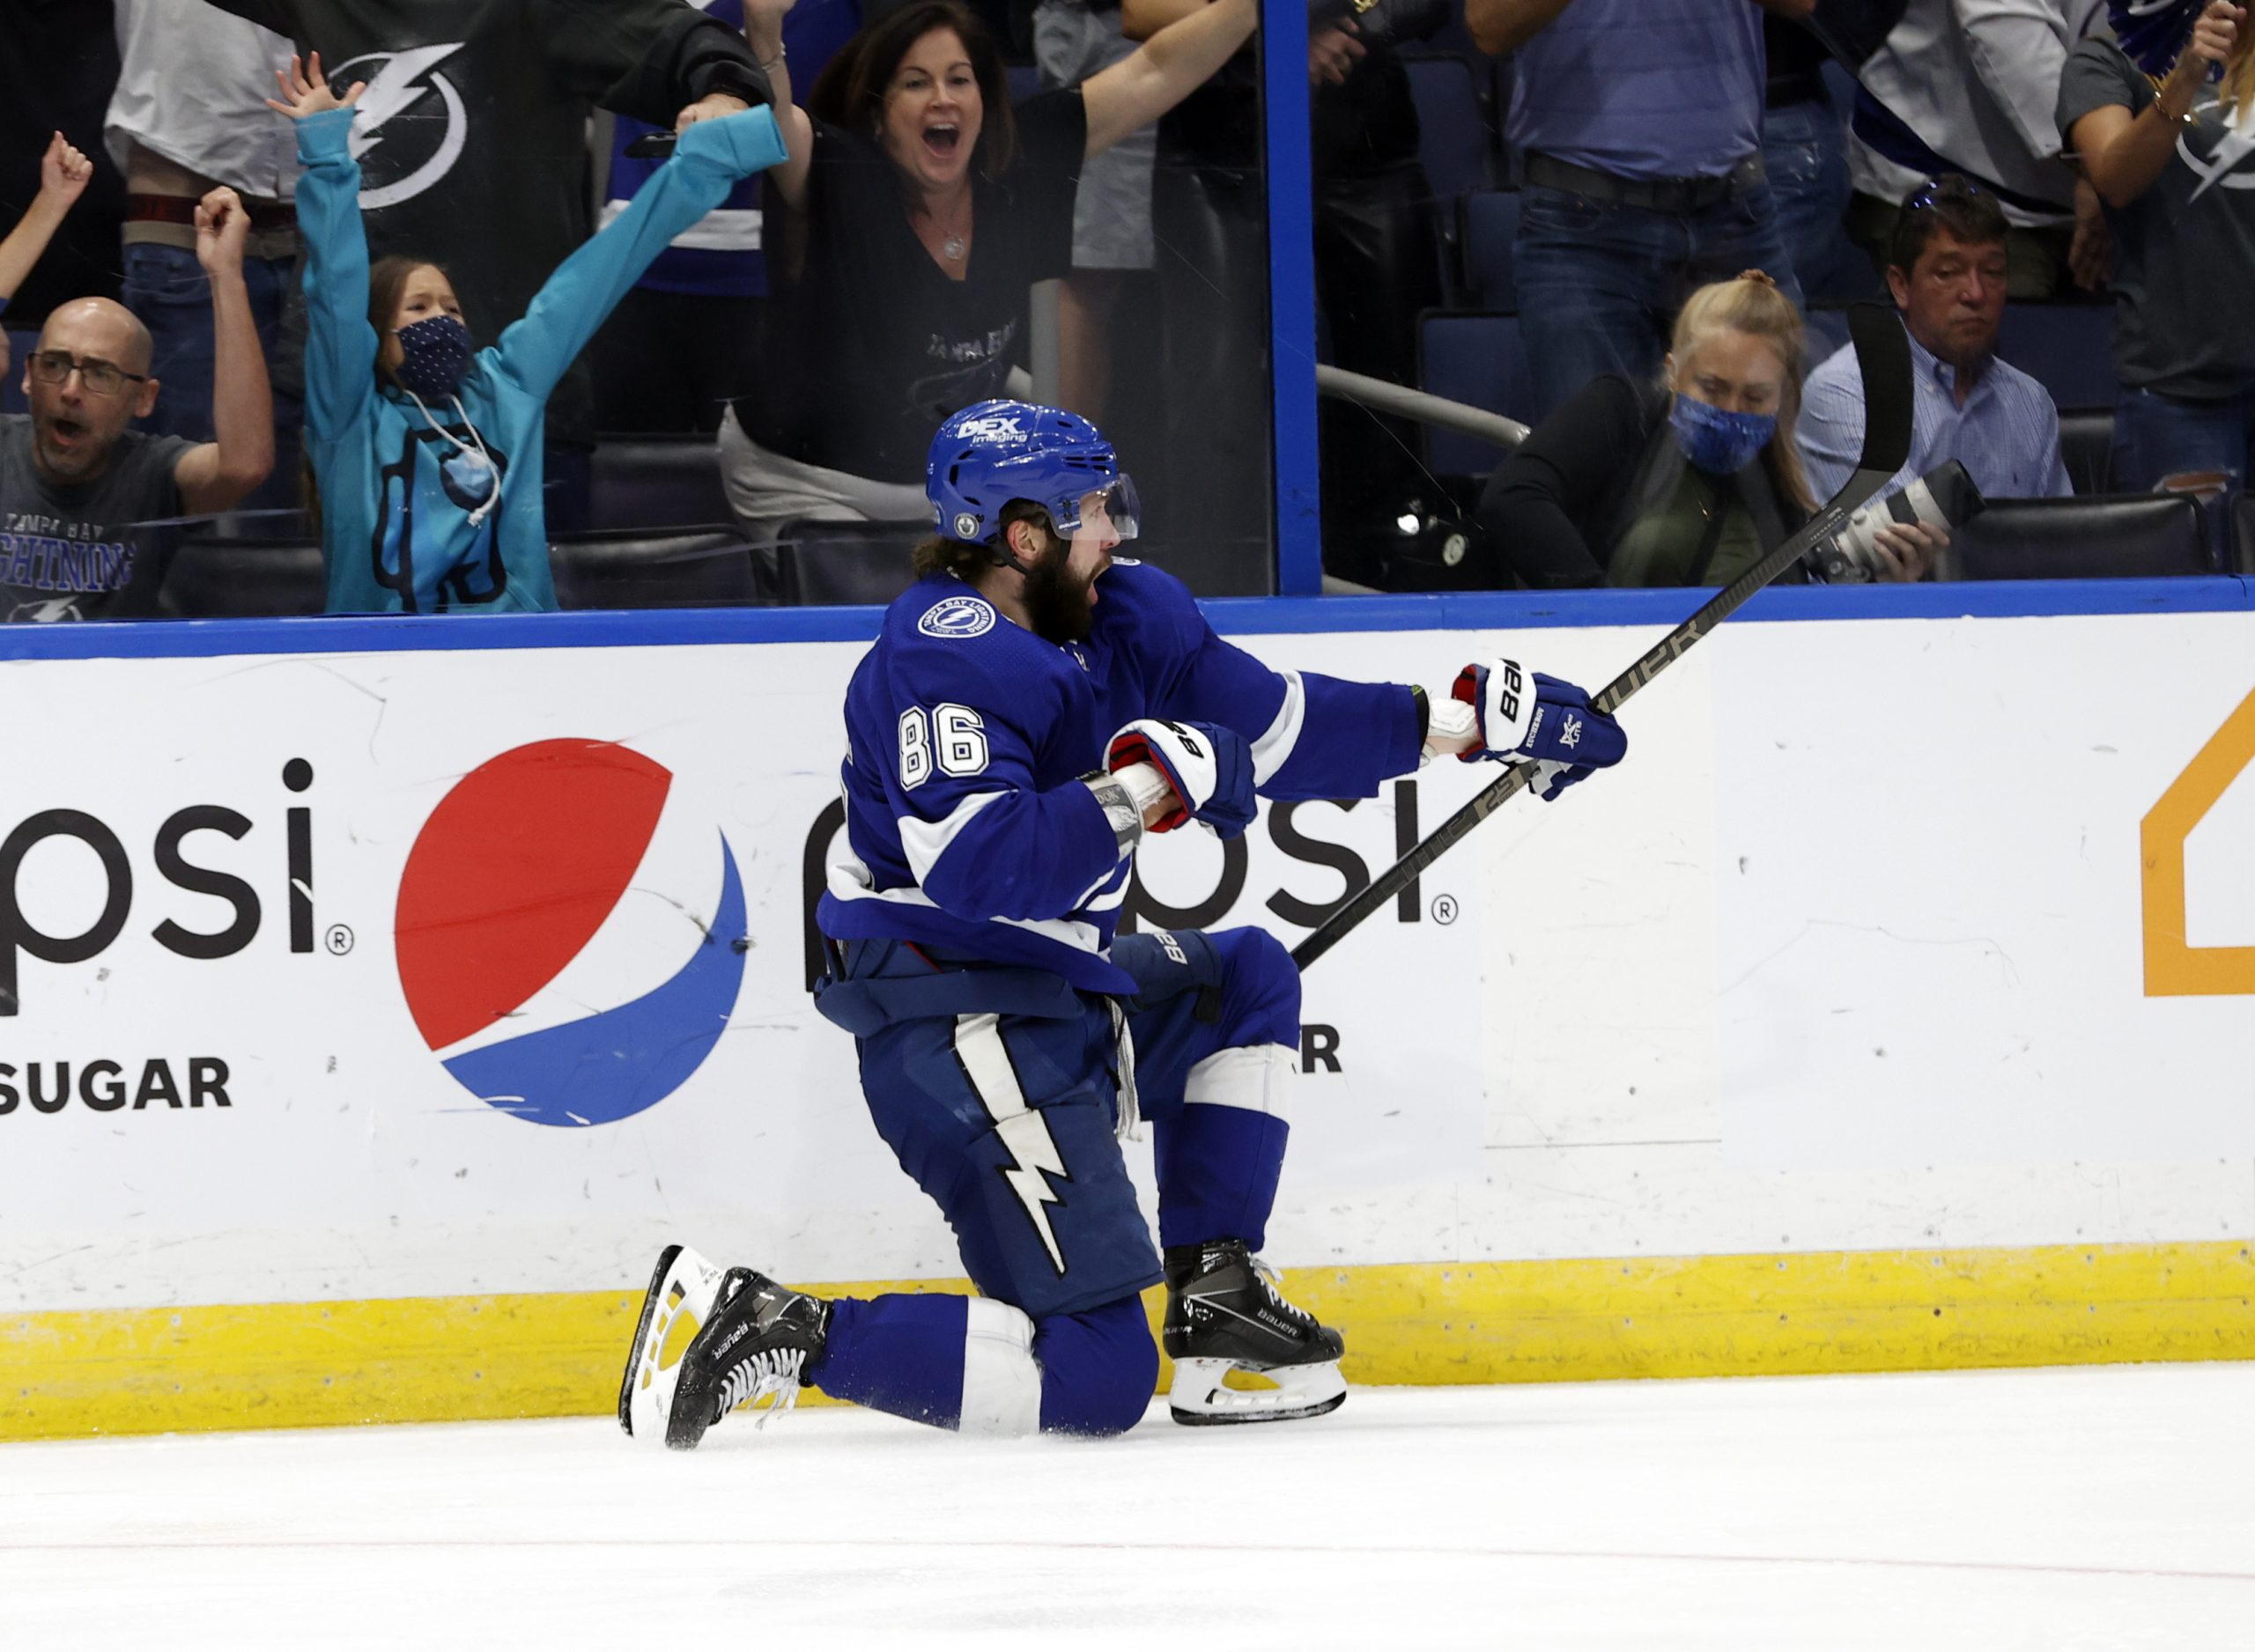 Jun 5, 2021; Tampa, Florida, USA; Tampa Bay Lightning right wing Nikita Kucherov (86) celebrates as he scores a goal against the Carolina Hurricanes during the third period in game four of the second round of the 2021 Stanley Cup Playoffs at Amalie Arena.